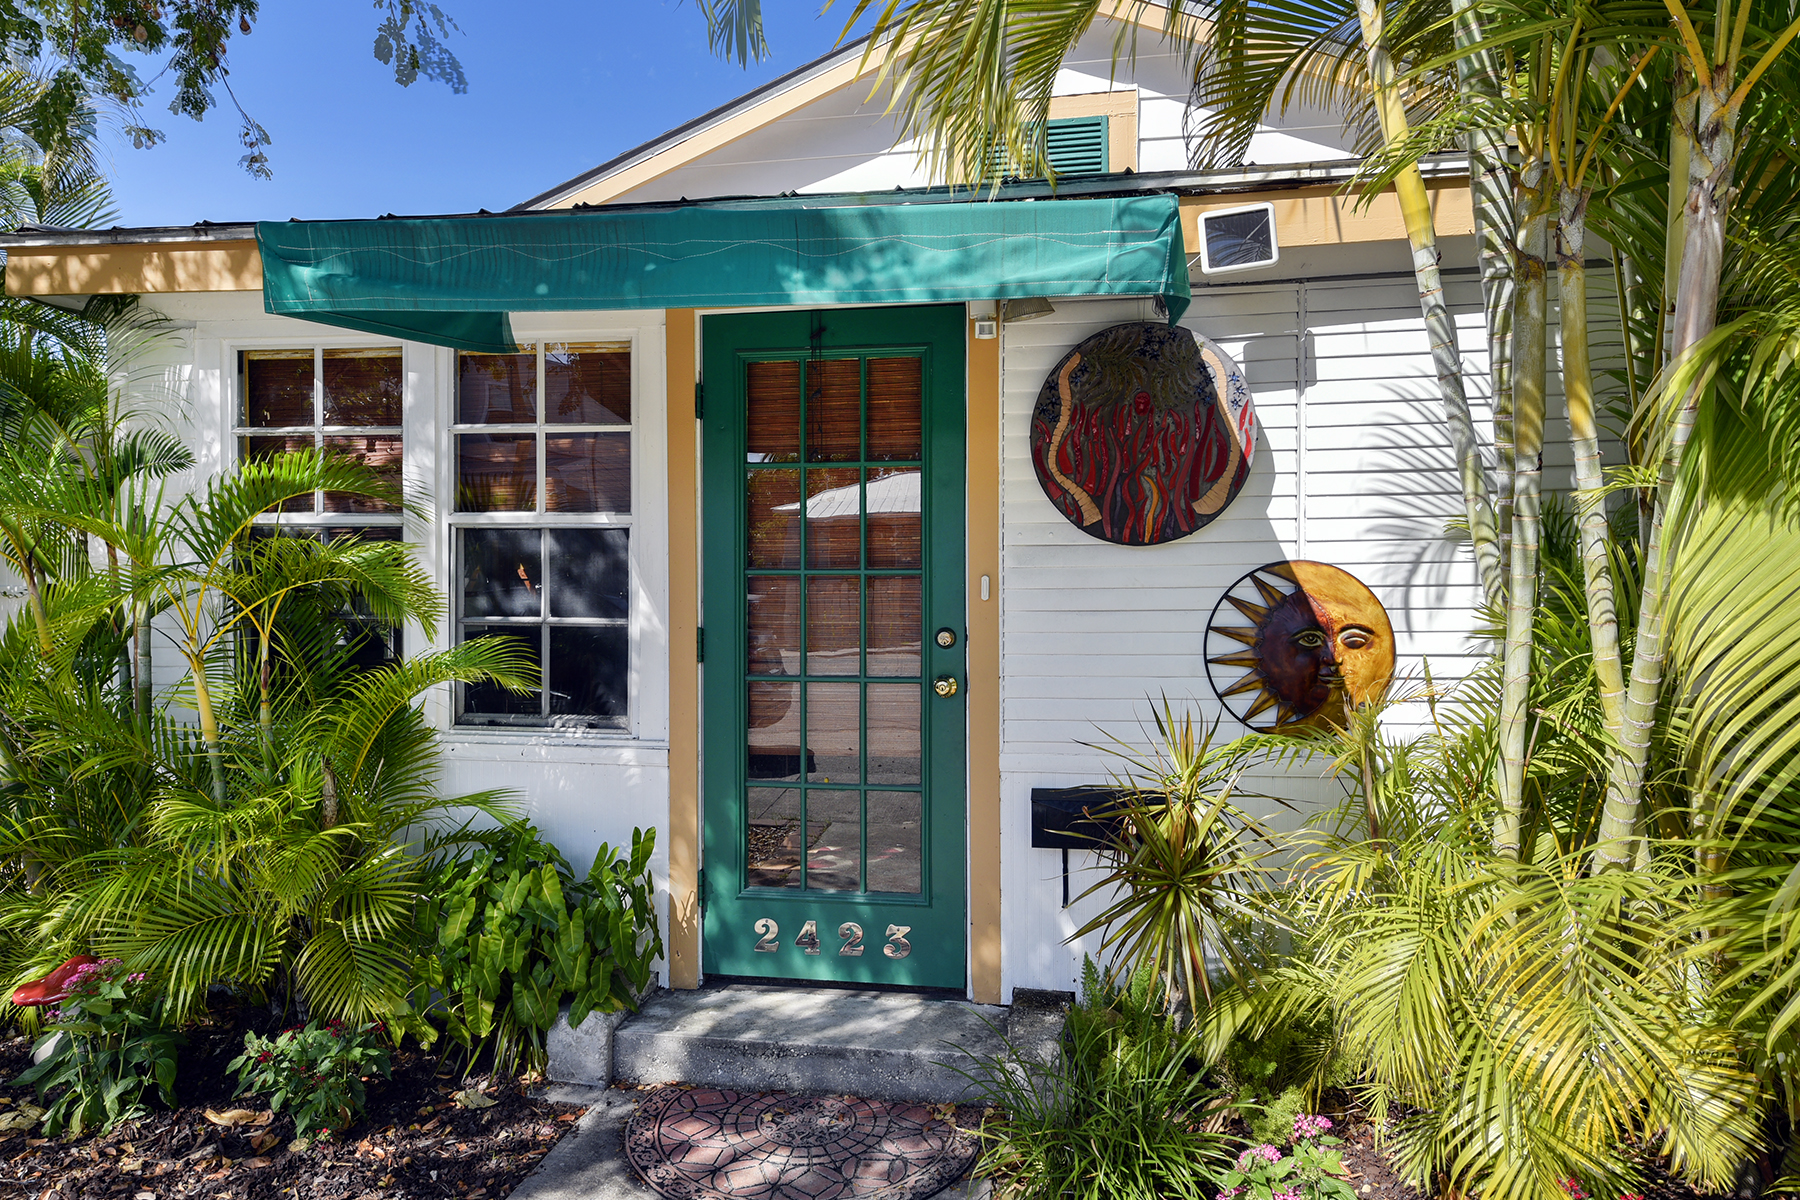 Maison unifamiliale pour l Vente à Lovely Key West Home 2423 Patterson Avenue Key West, Florida, 33040 États-Unis